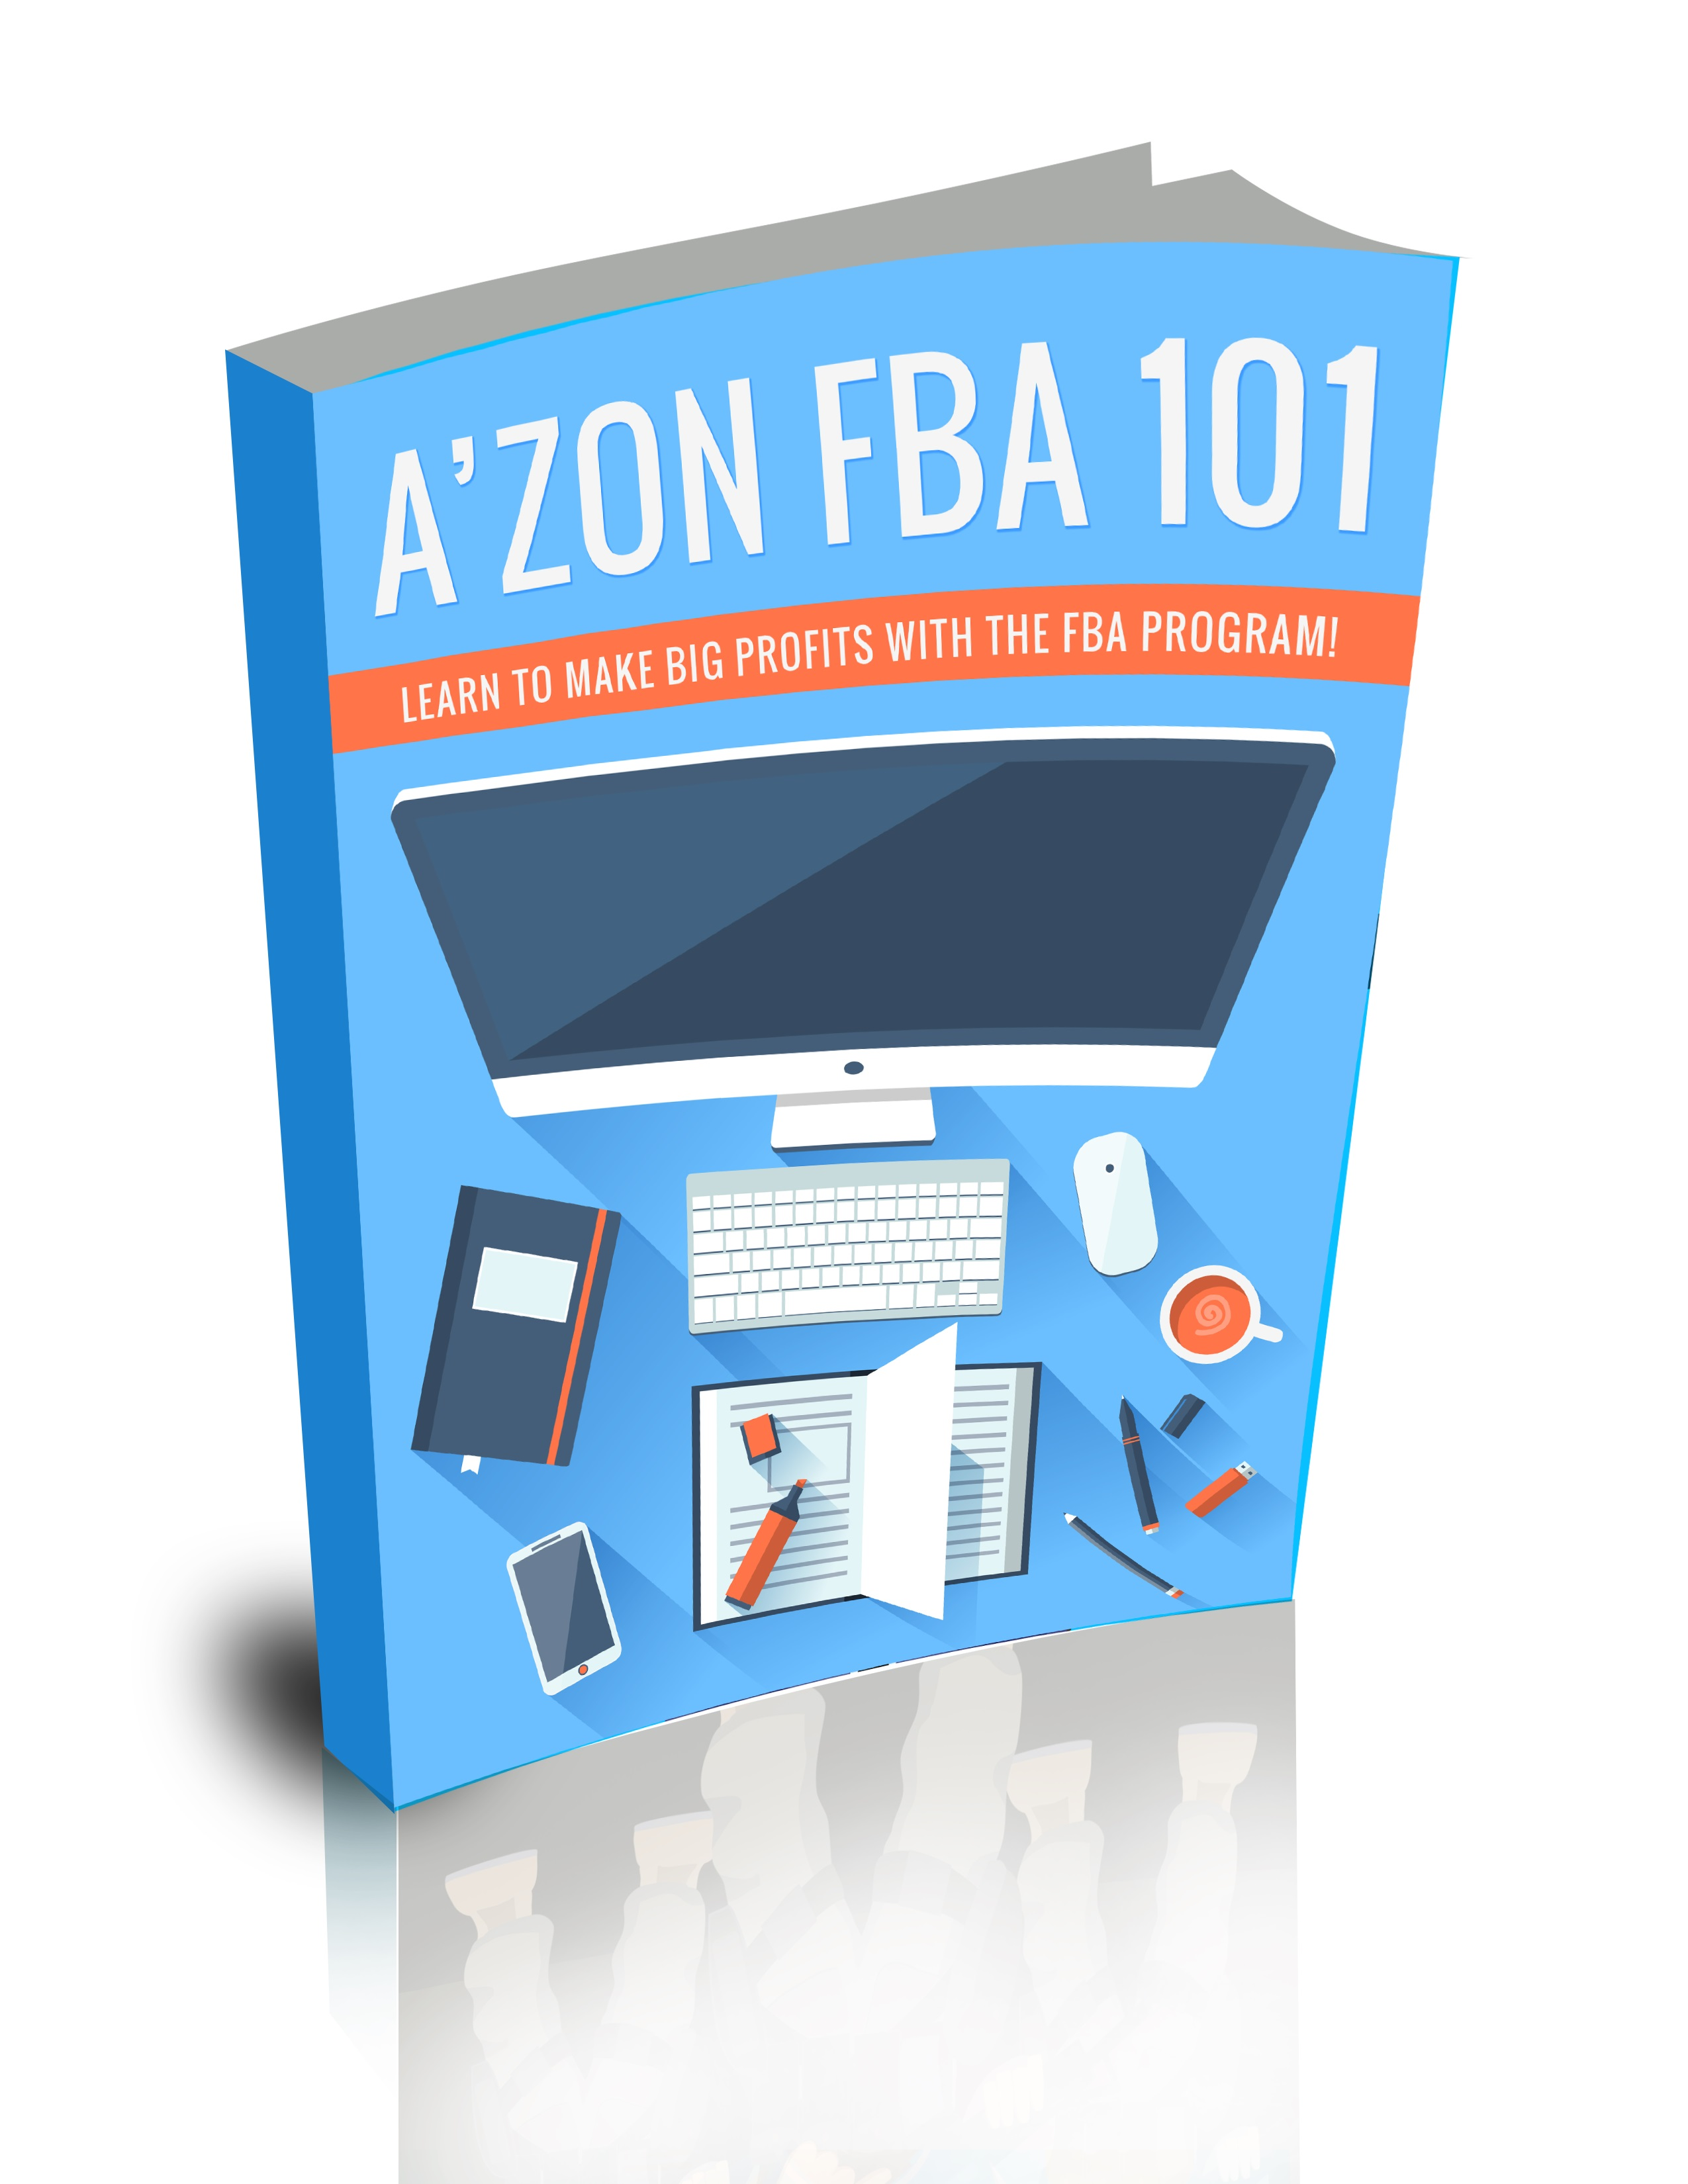 AZON FBA 101 Package